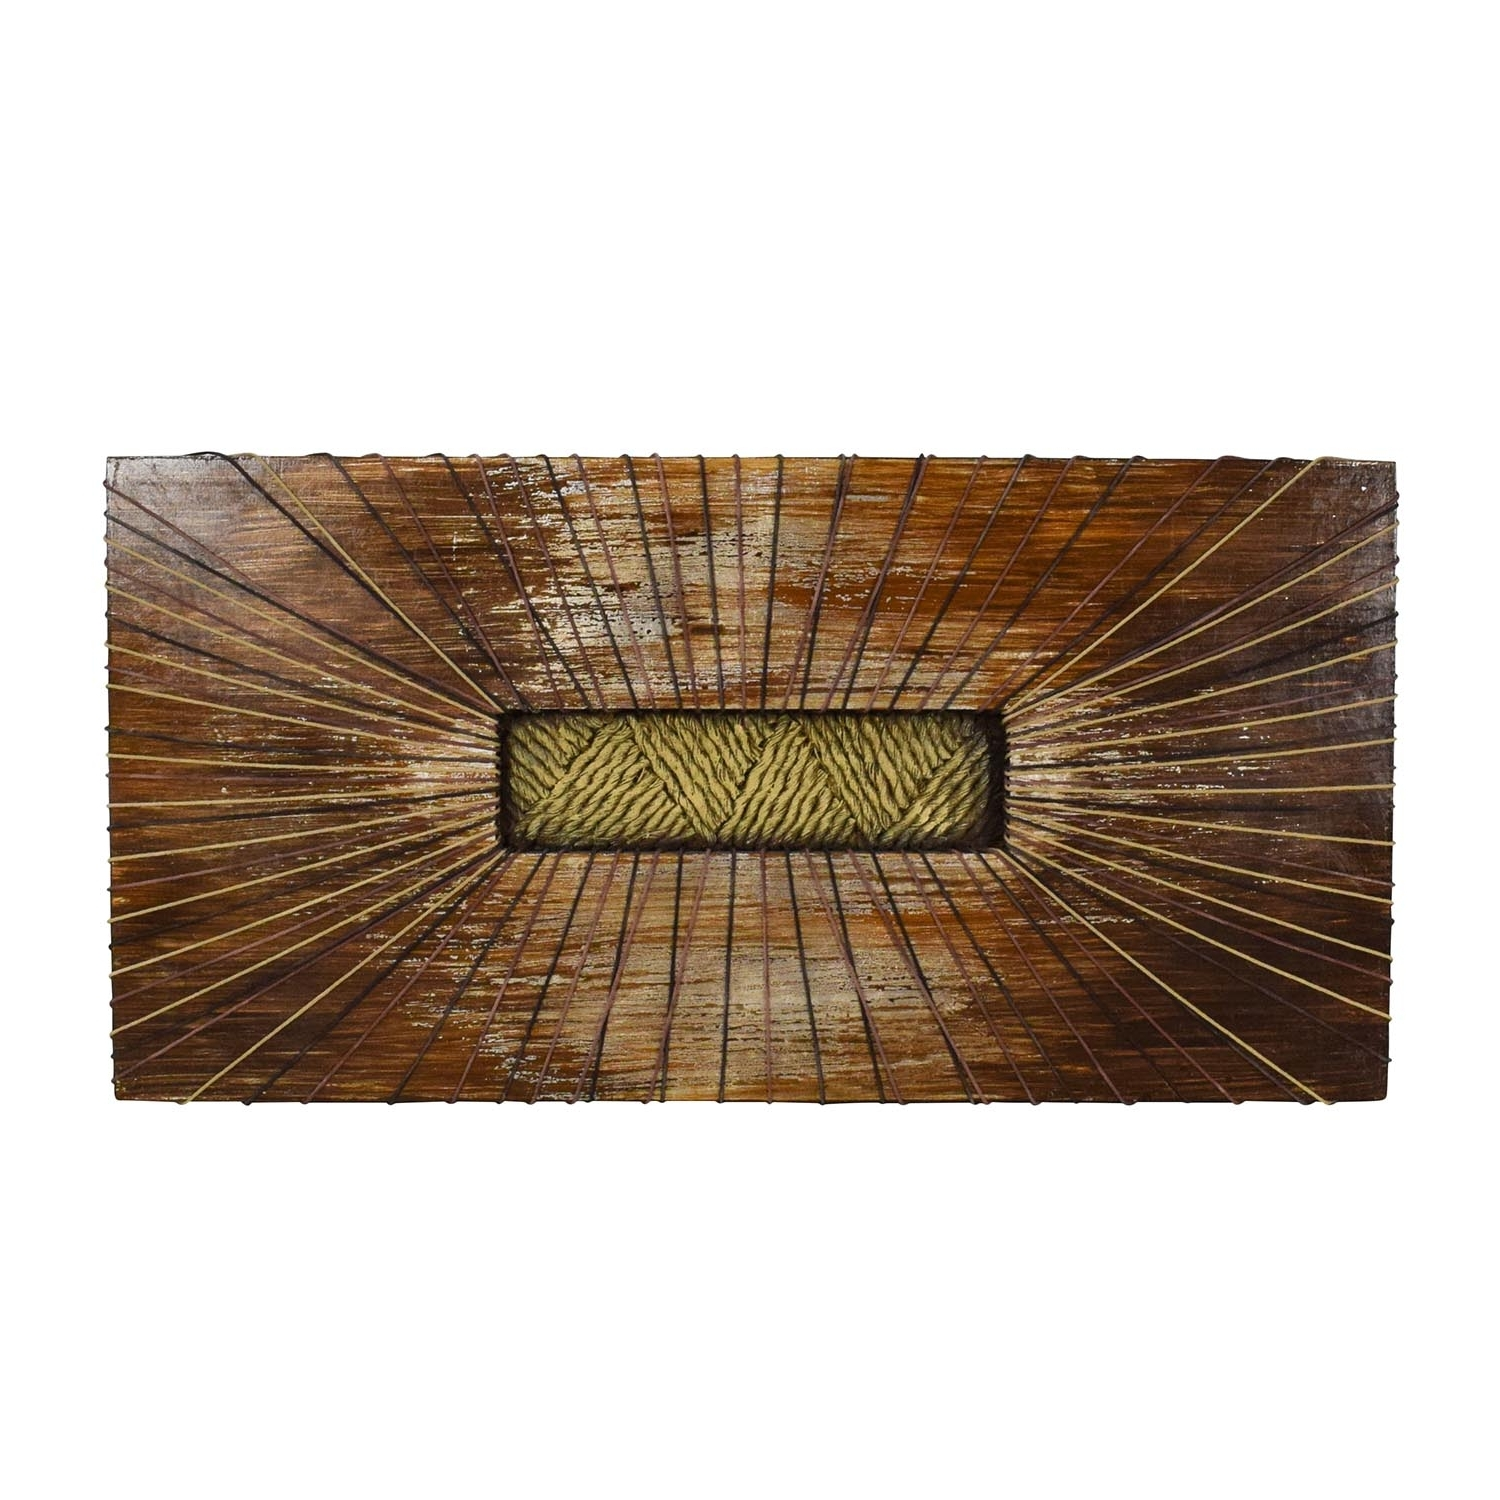 [%83% Off – Uttermost Uttermost Beginnings Metal Wall Art / Decor In Most Recently Released Uttermost Wall Art Uttermost Wall Art With Regard To Fashionable 83% Off – Uttermost Uttermost Beginnings Metal Wall Art / Decor Famous Uttermost Wall Art With 83% Off – Uttermost Uttermost Beginnings Metal Wall Art / Decor 2018 83% Off – Uttermost Uttermost Beginnings Metal Wall Art / Decor Intended For Uttermost Wall Art%] (View 1 of 15)